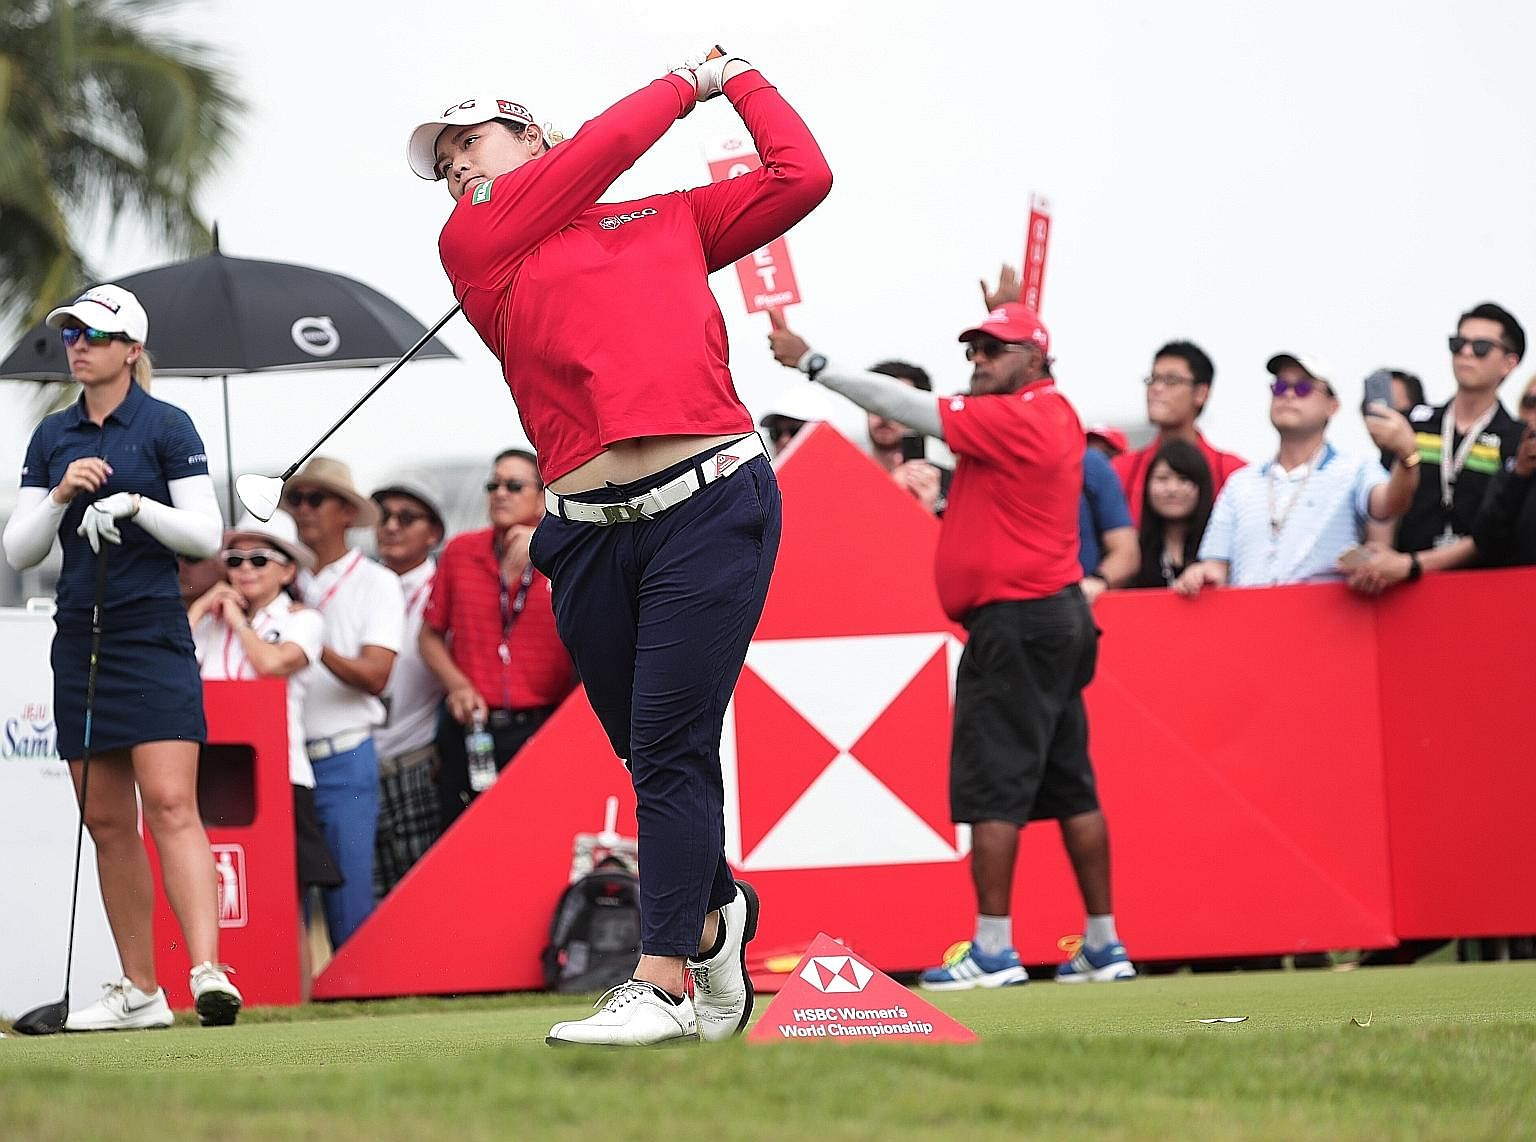 Thailand's Ariya Jutanugarn carded a six-under 66 yesterday to take a one-shot lead at the Sentosa Golf Club's New Tanjong Course. The world No. 1 had won nine of her 11 pro titles as the third-round leader.